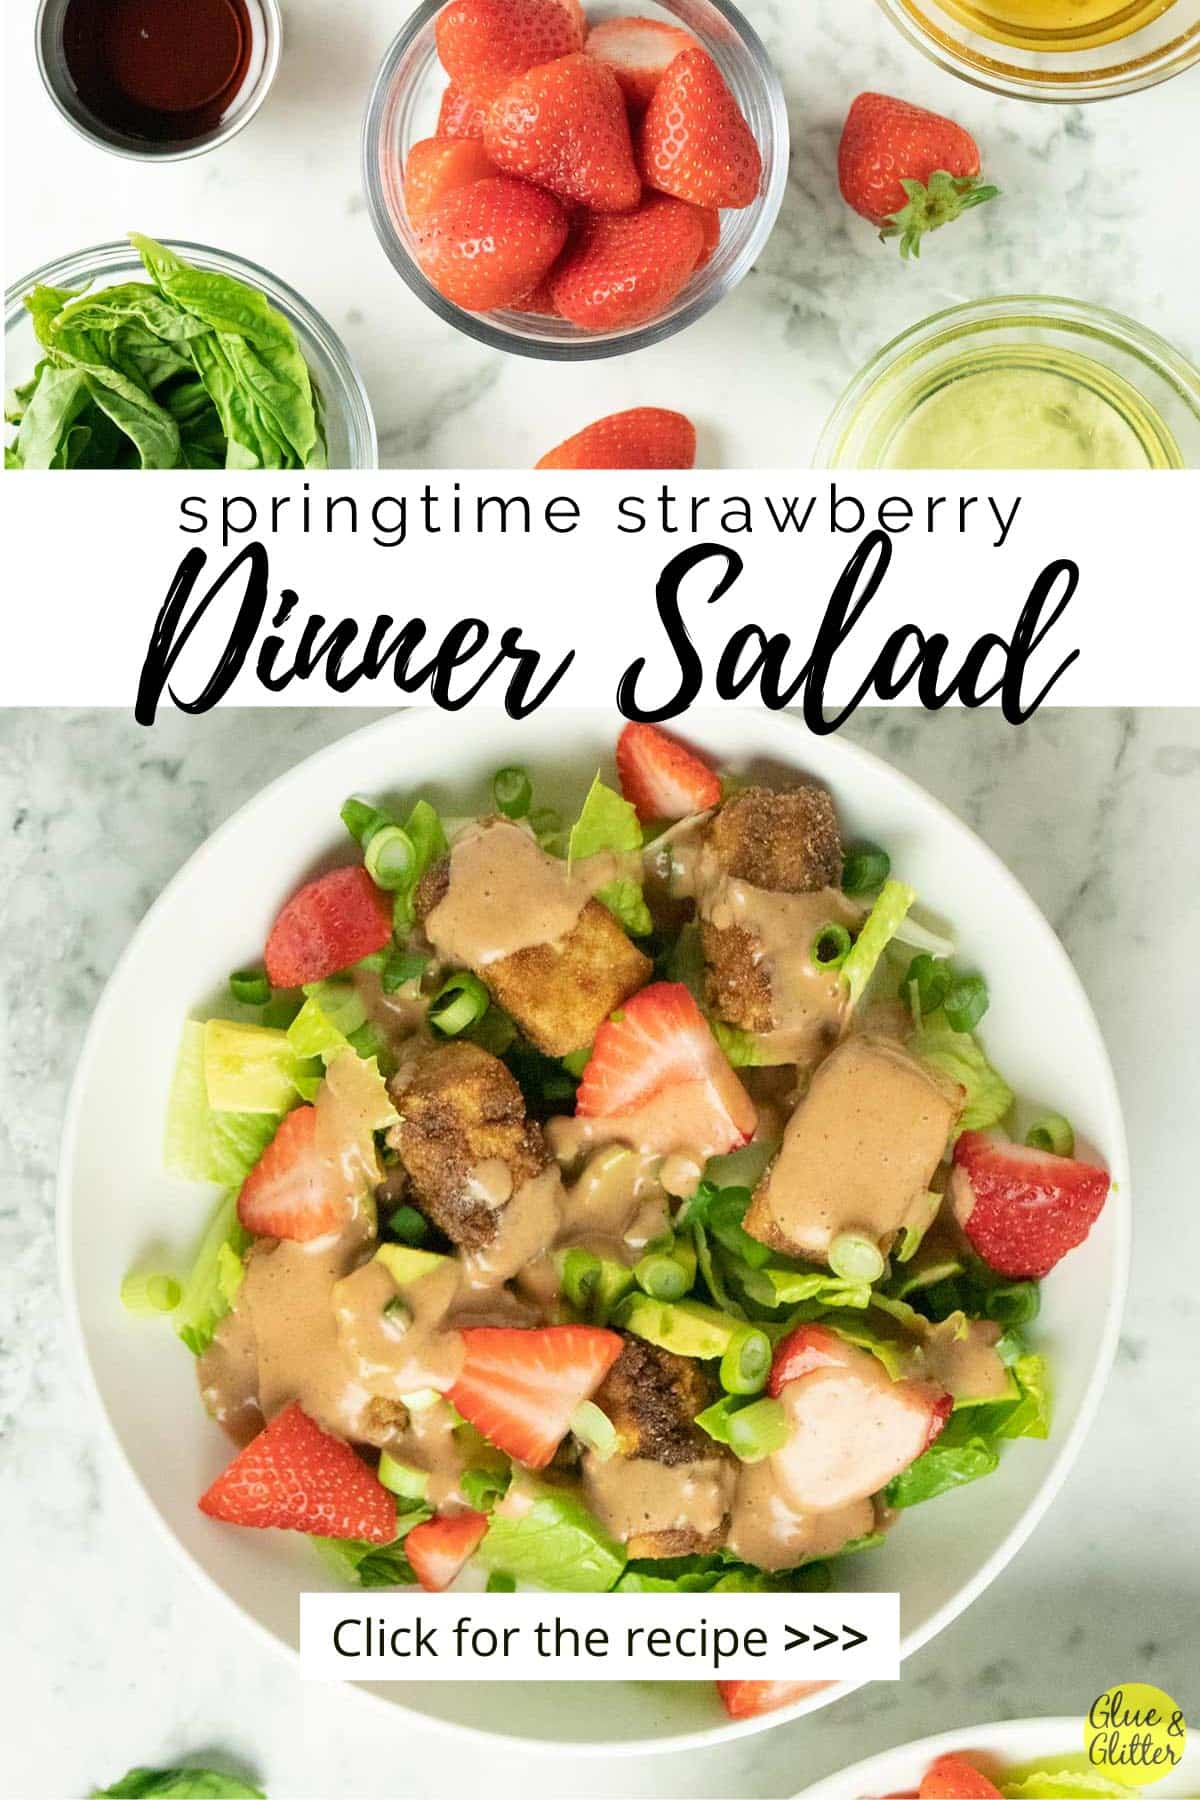 crispy tofu salad in a white bowl with romaine, strawberries, avocado, green onions, and creamy dressing